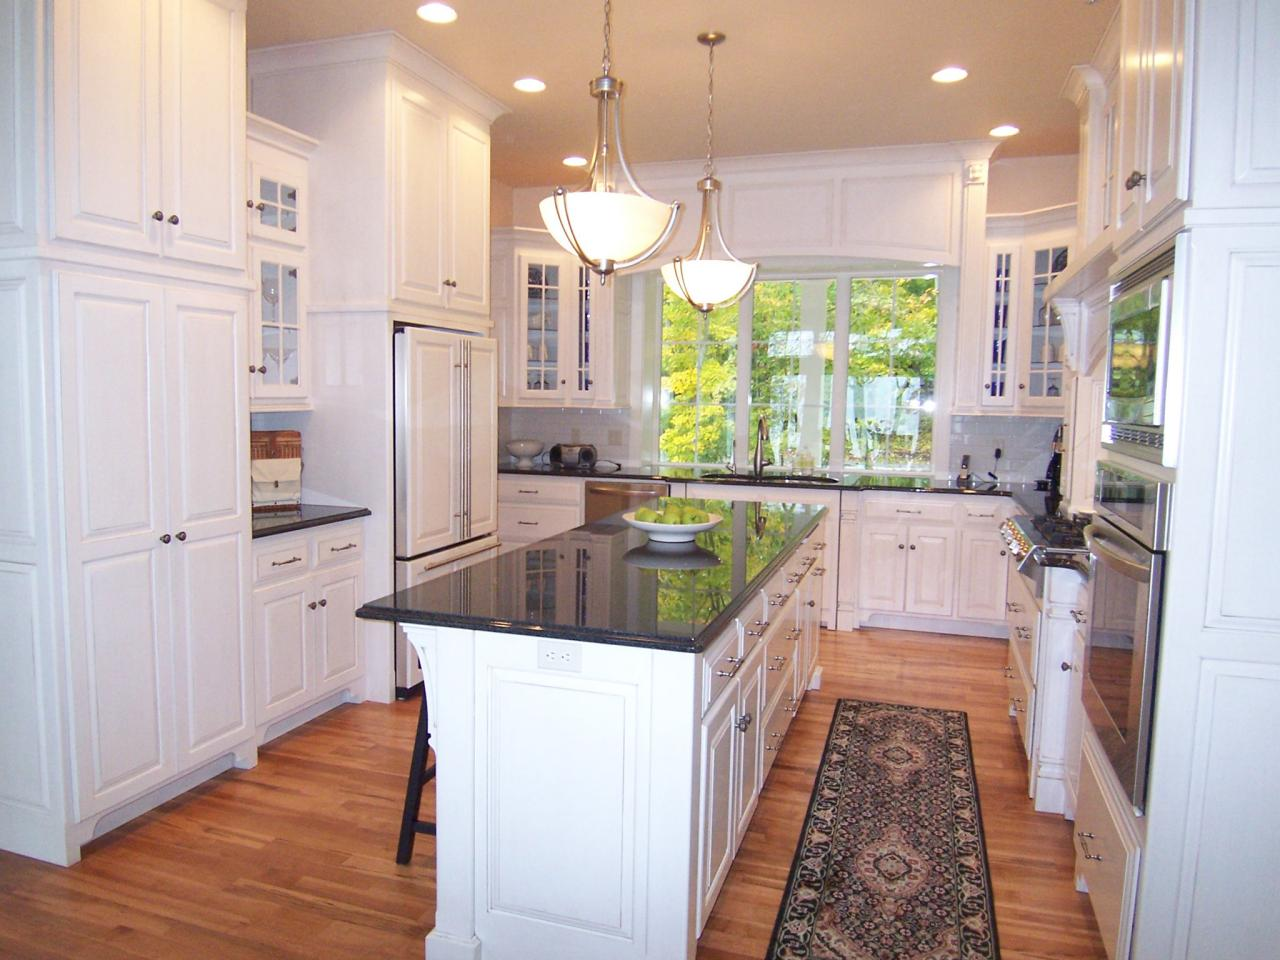 U shaped kitchen design ideas pictures ideas from hgtv How do you design a kitchen